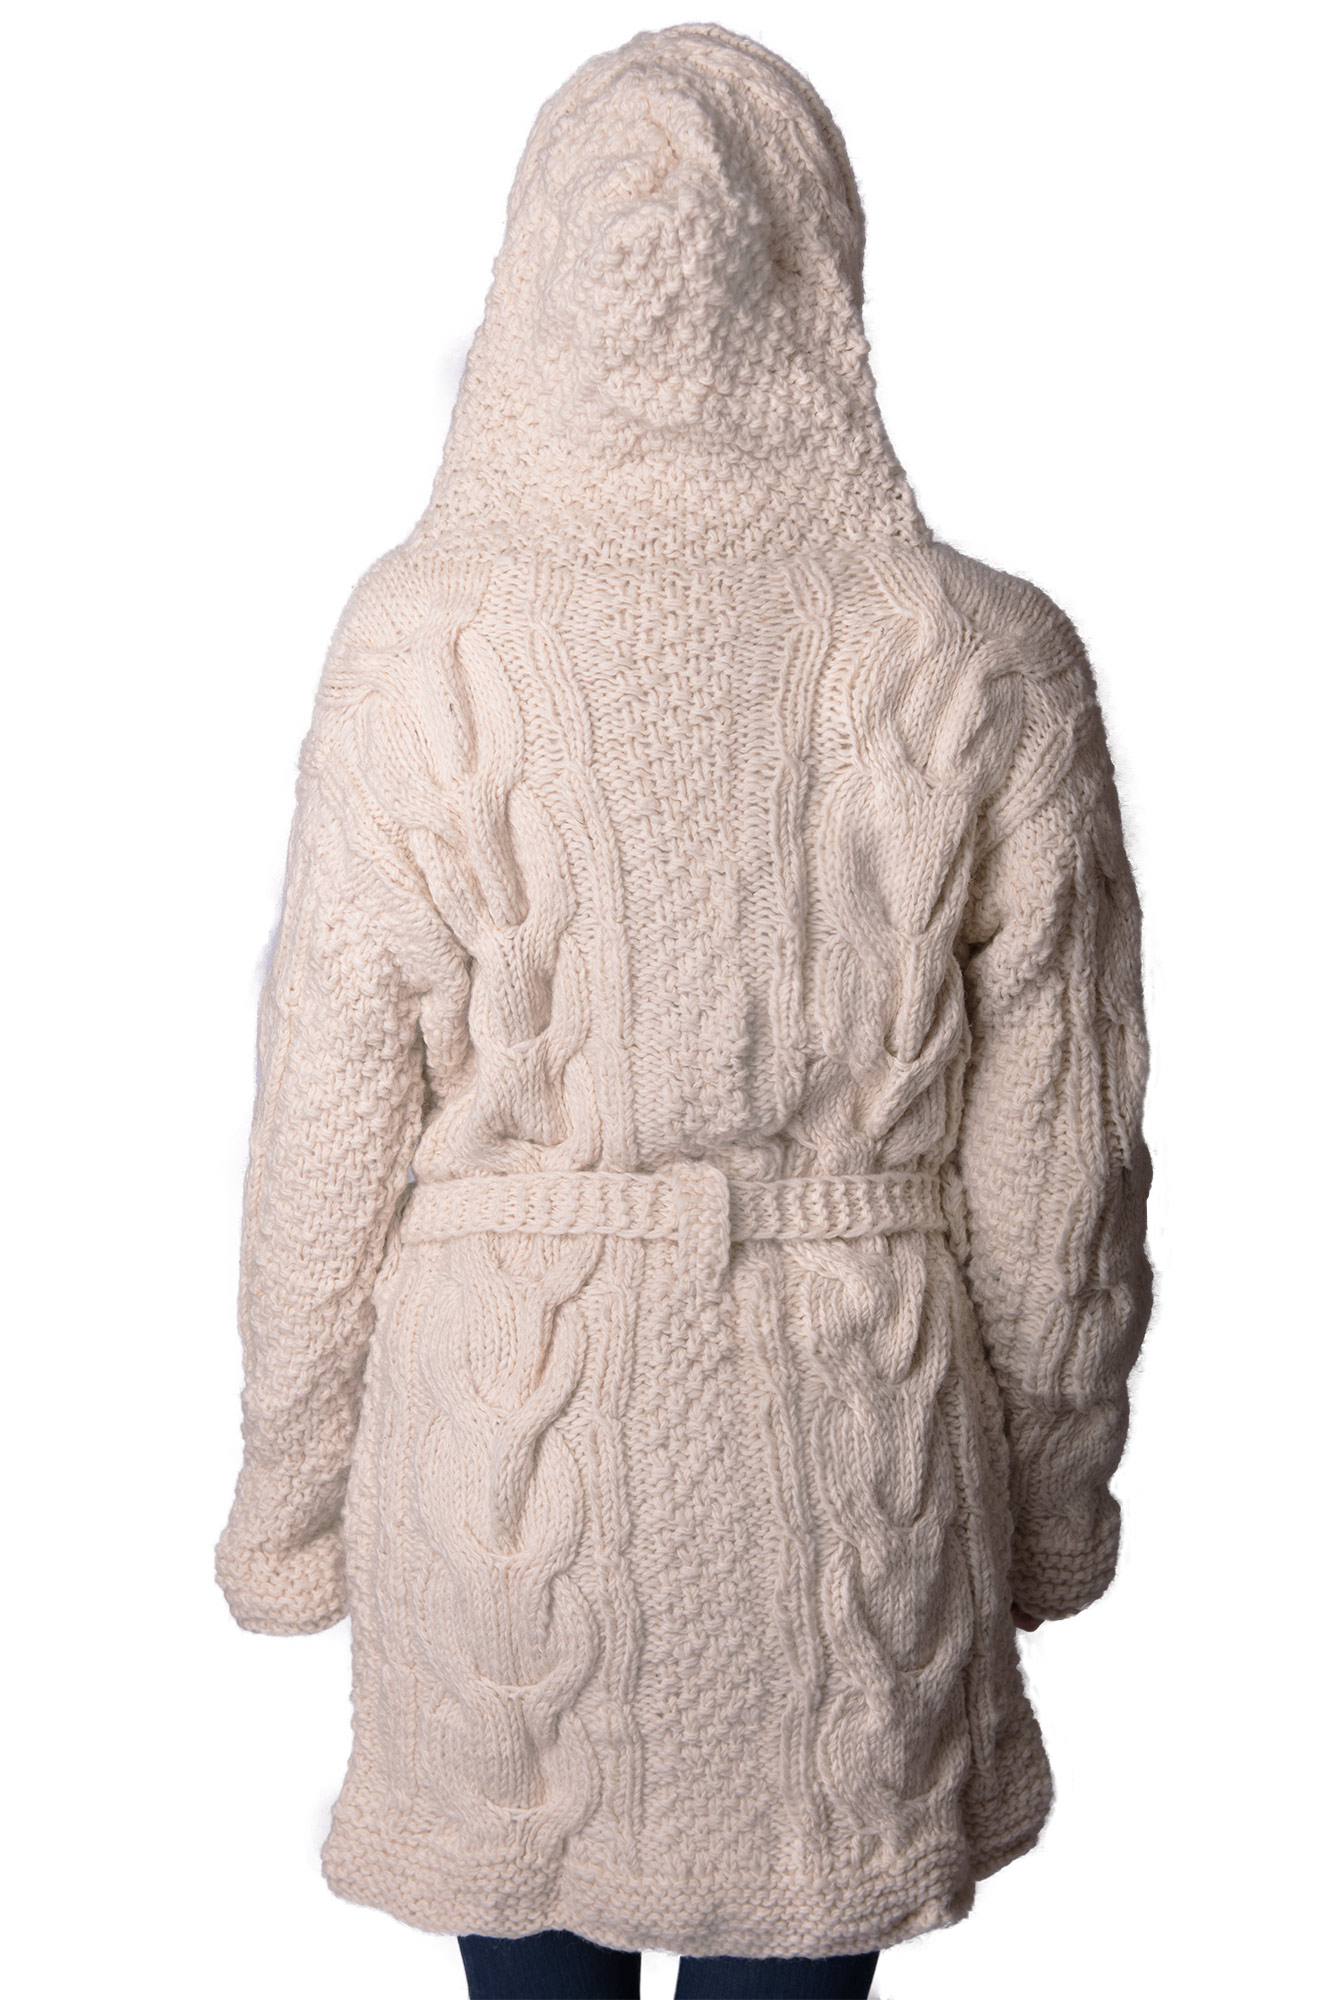 Himalayan Mountain Jacket Full Length Cable Knit, Cream